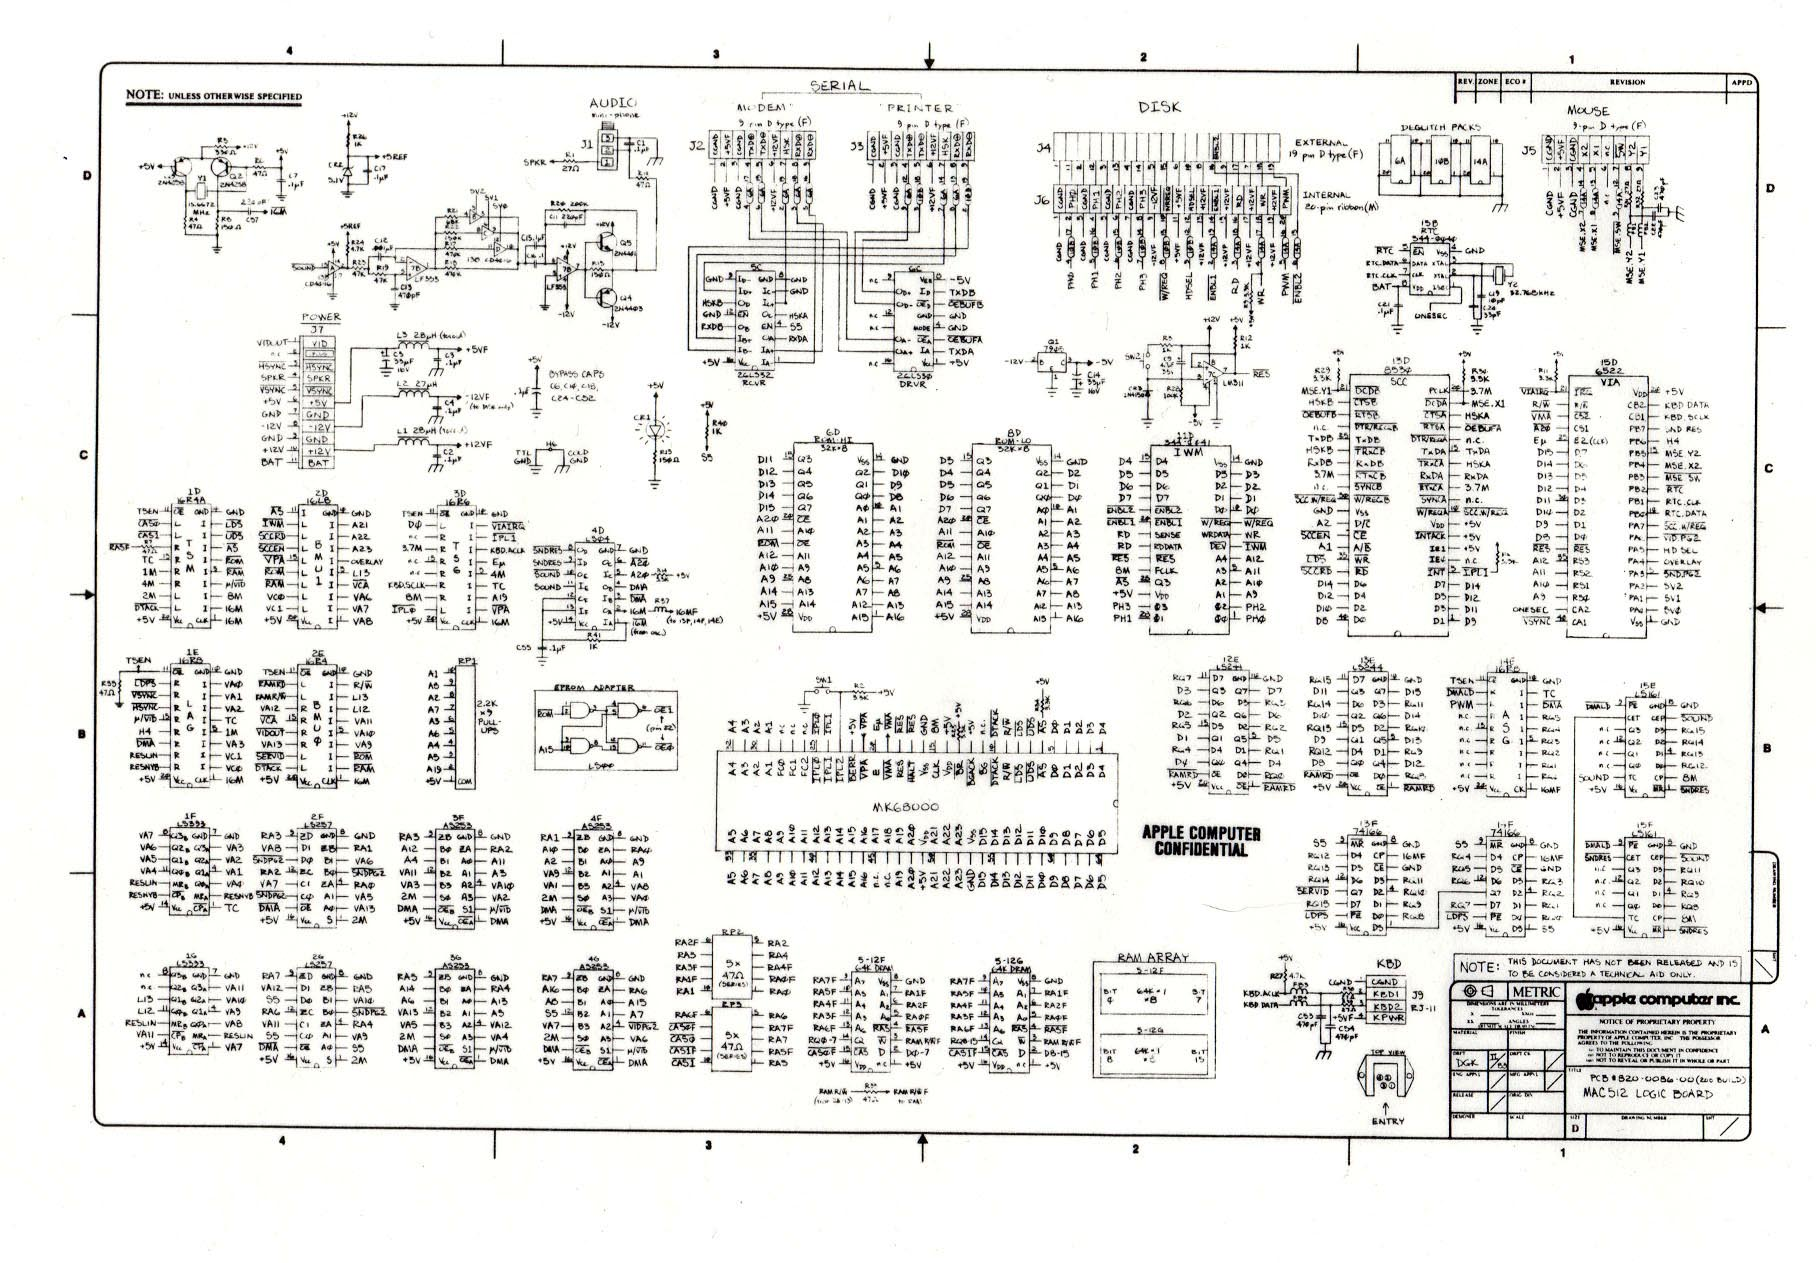 Digibarn Diagrams Original Macintosh 512k Logic Board